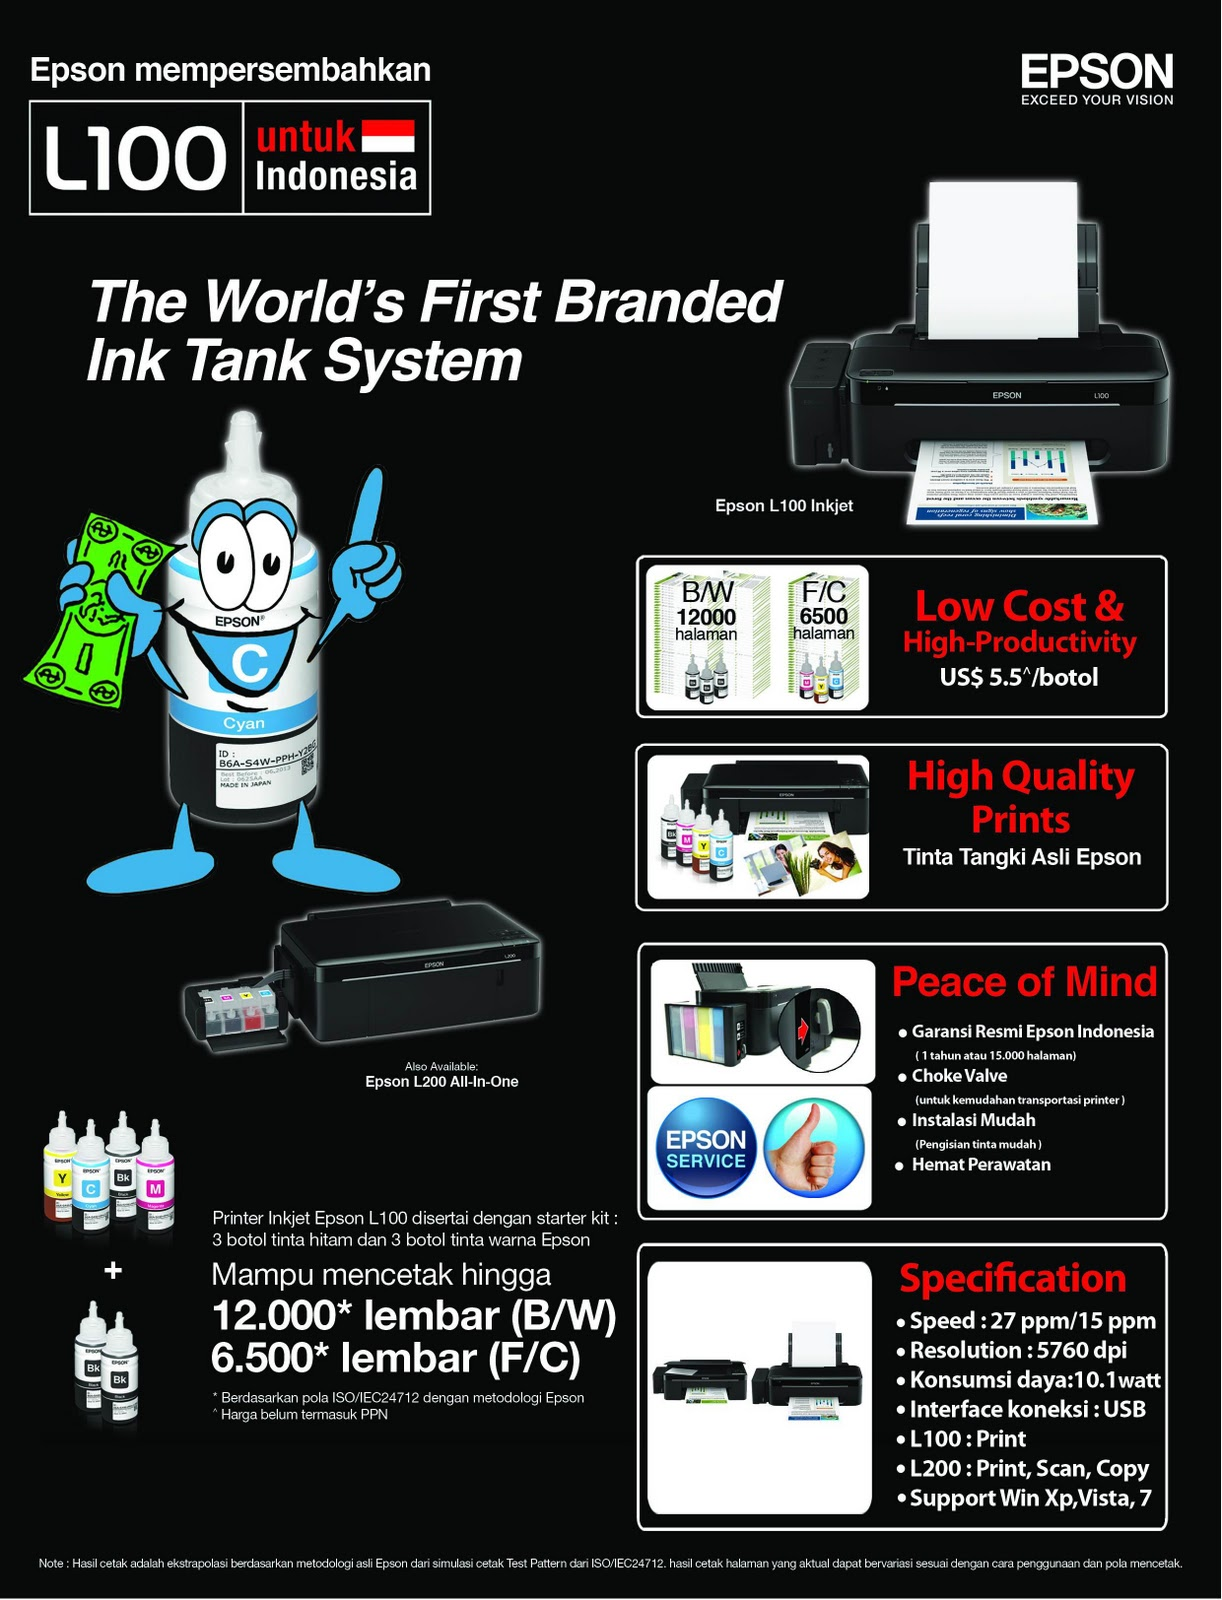 ABS-007 SHARE: Cara Reset Ink Level Epson L100, L200, Dan L800